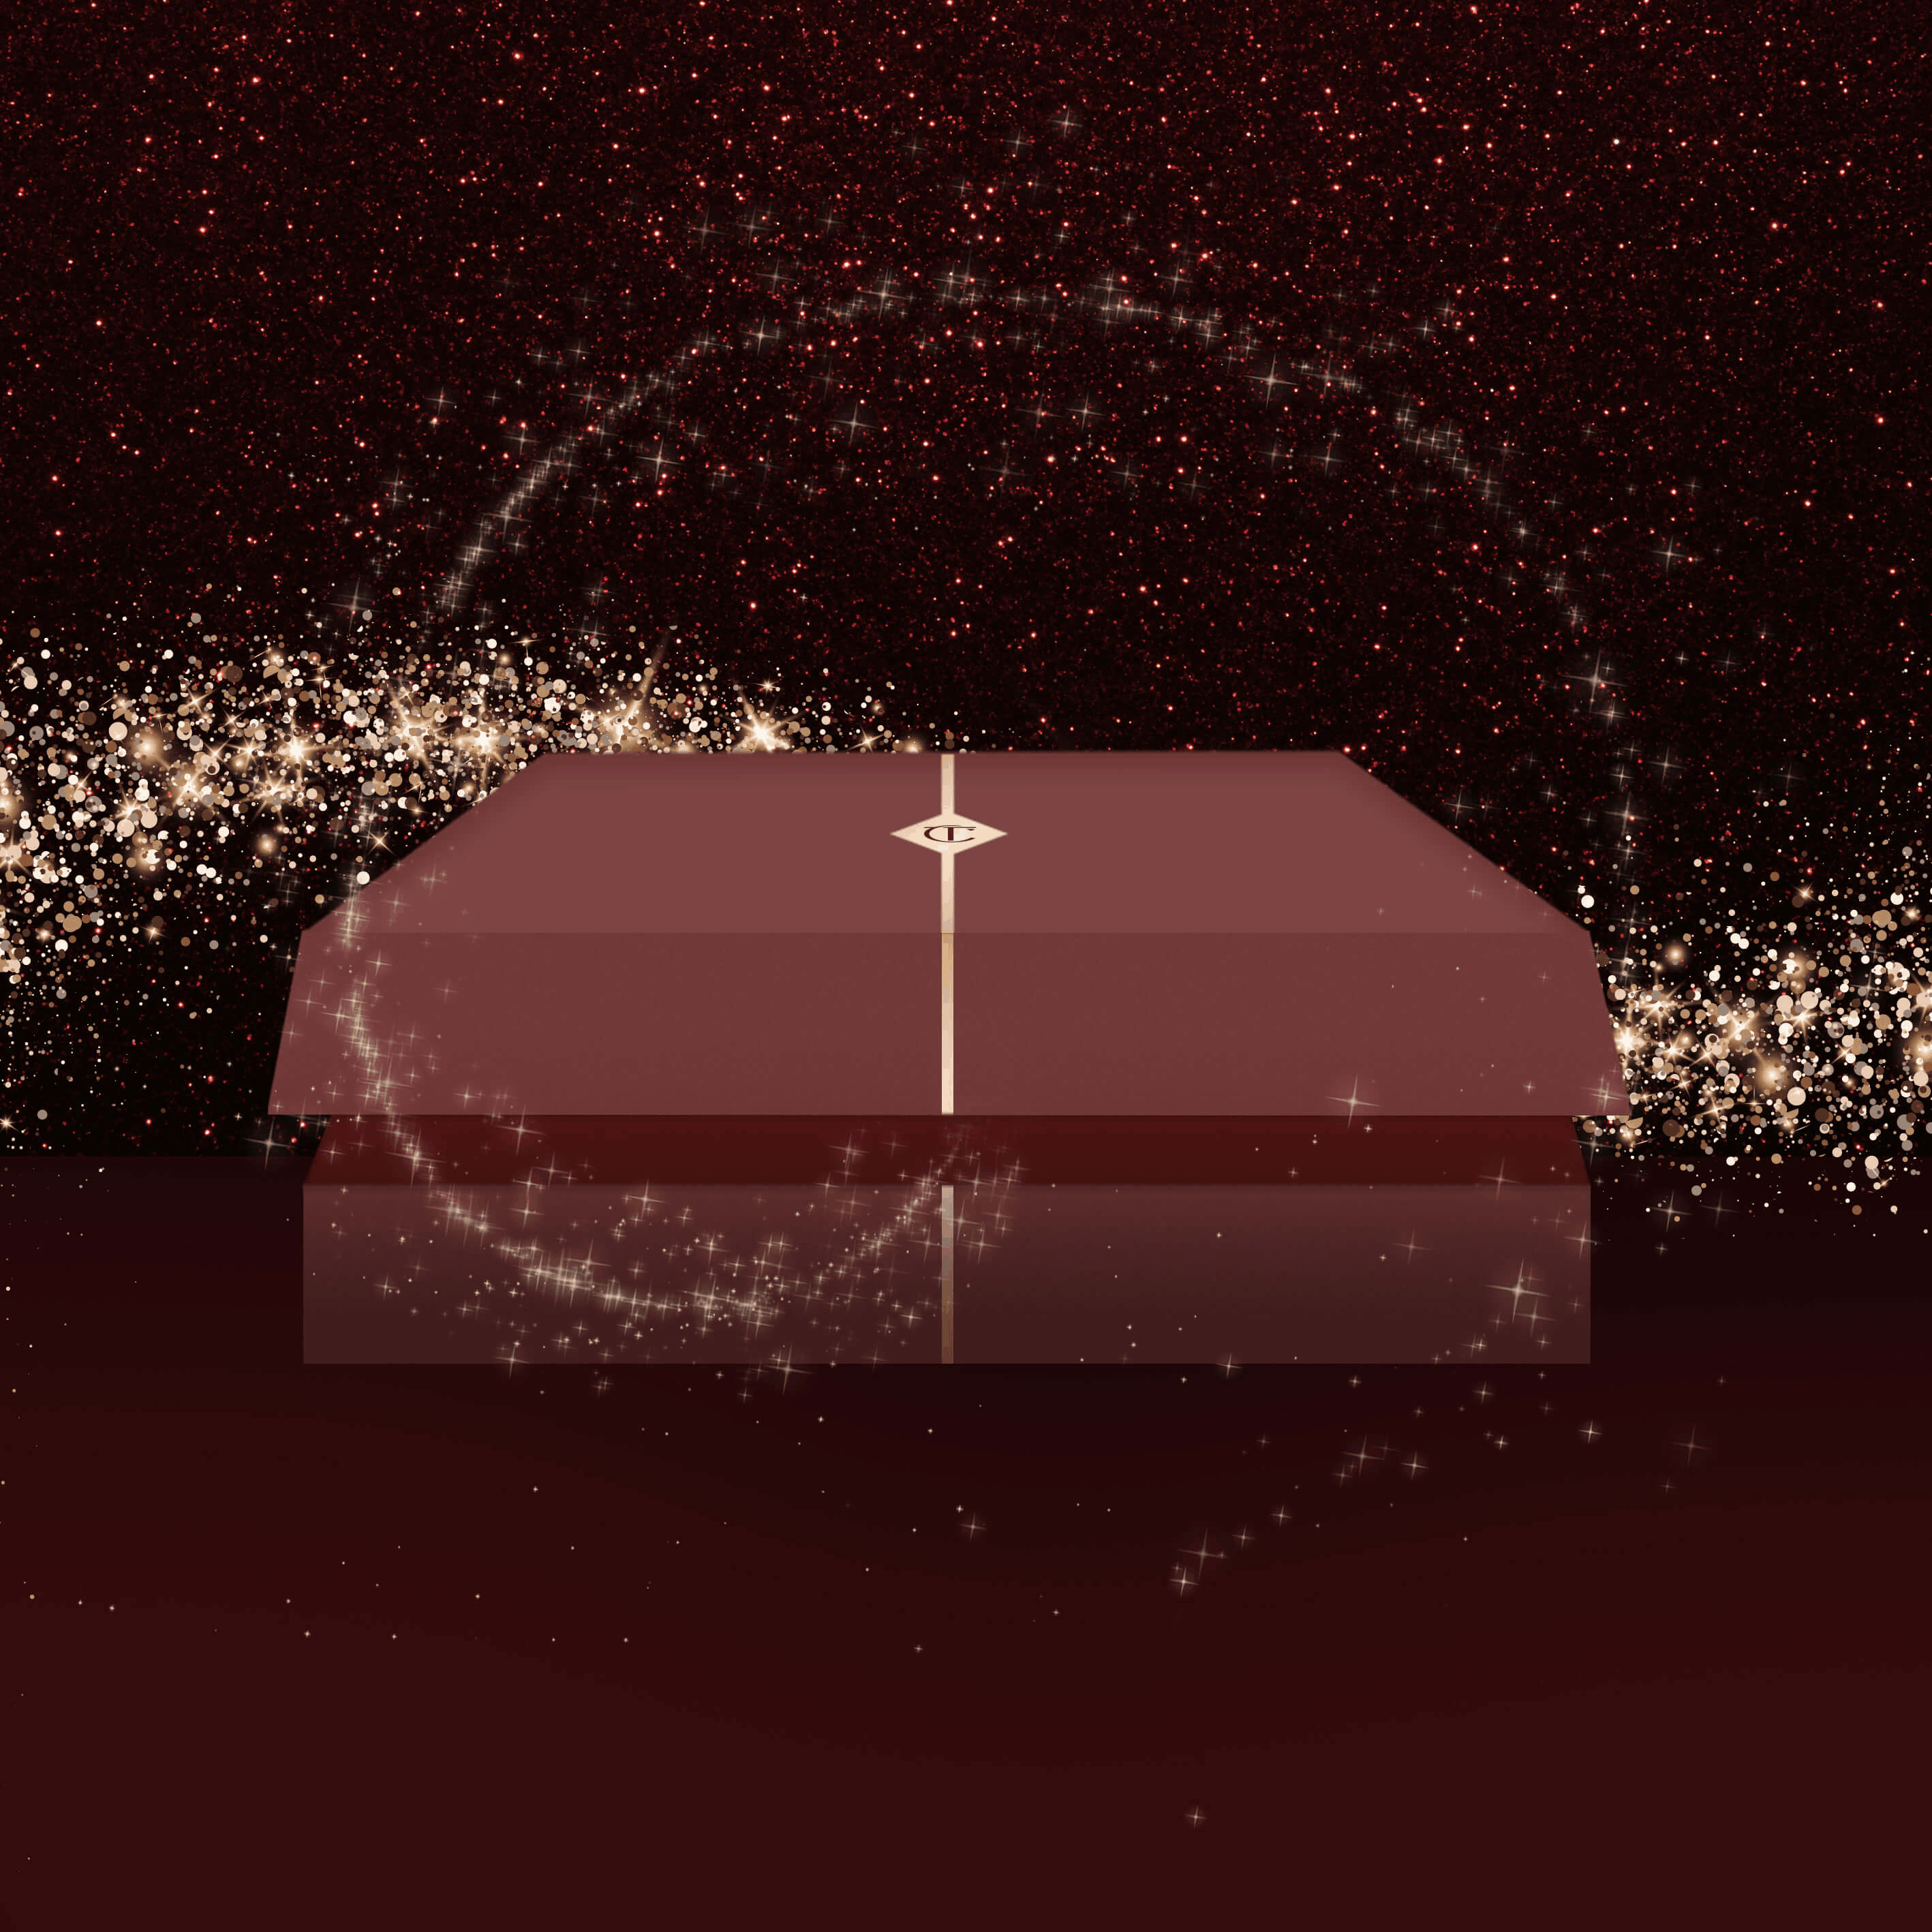 Charlotte Tilbury Cyber Monday Mystery Box Available Now + Coupon!